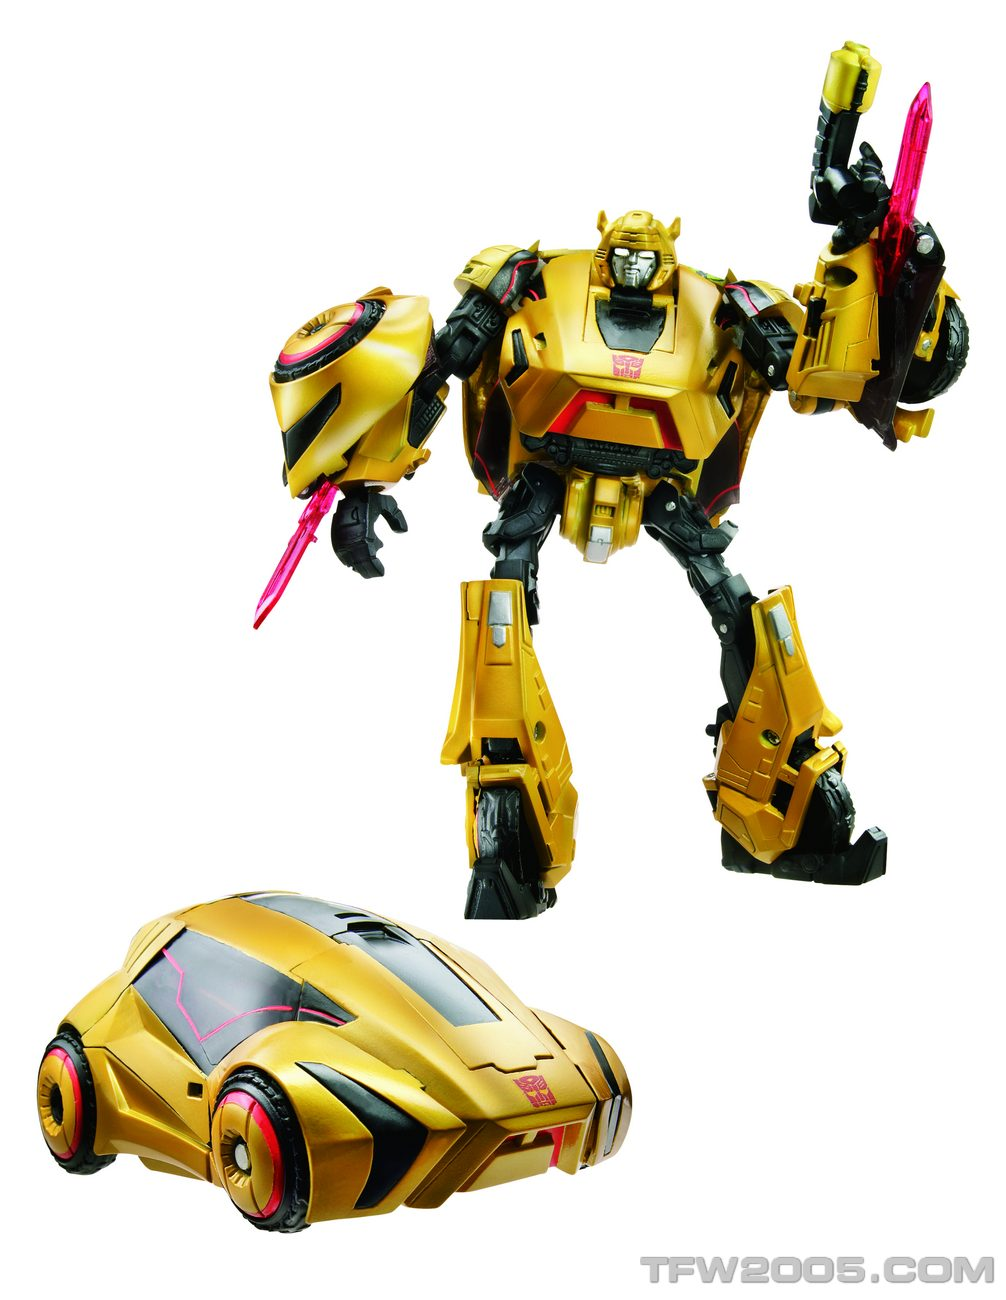 bumblebee wfc teletraan i the transformers wiki age of extinction transformers prime. Black Bedroom Furniture Sets. Home Design Ideas